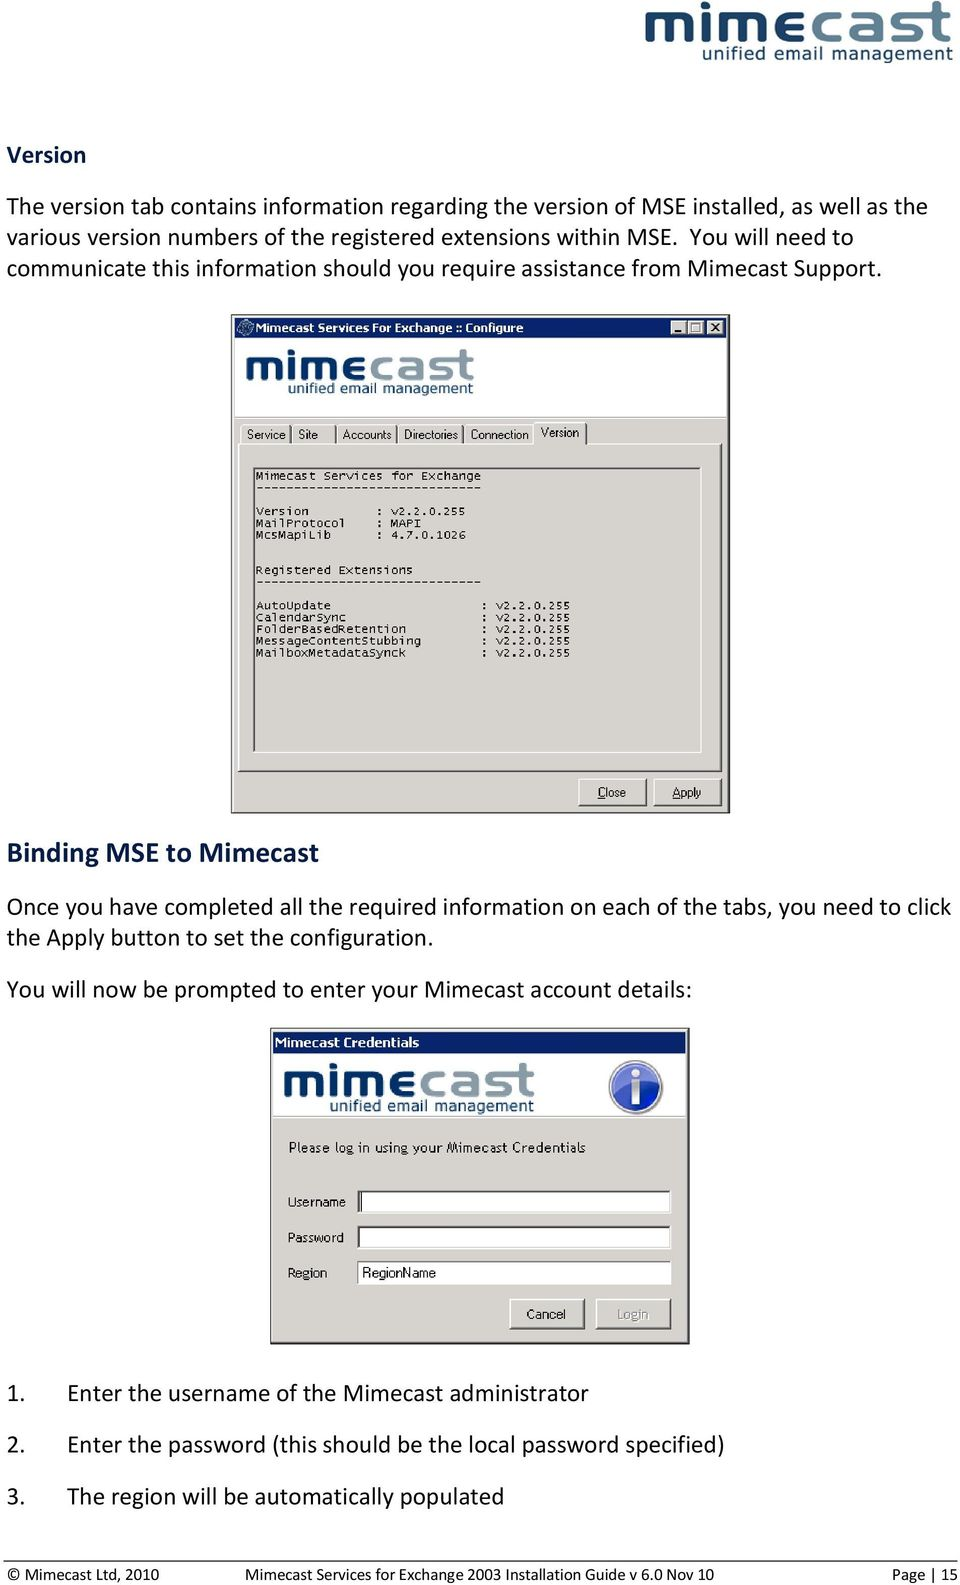 Greenbeltbowl / Try These Mimecast Admin Login Us